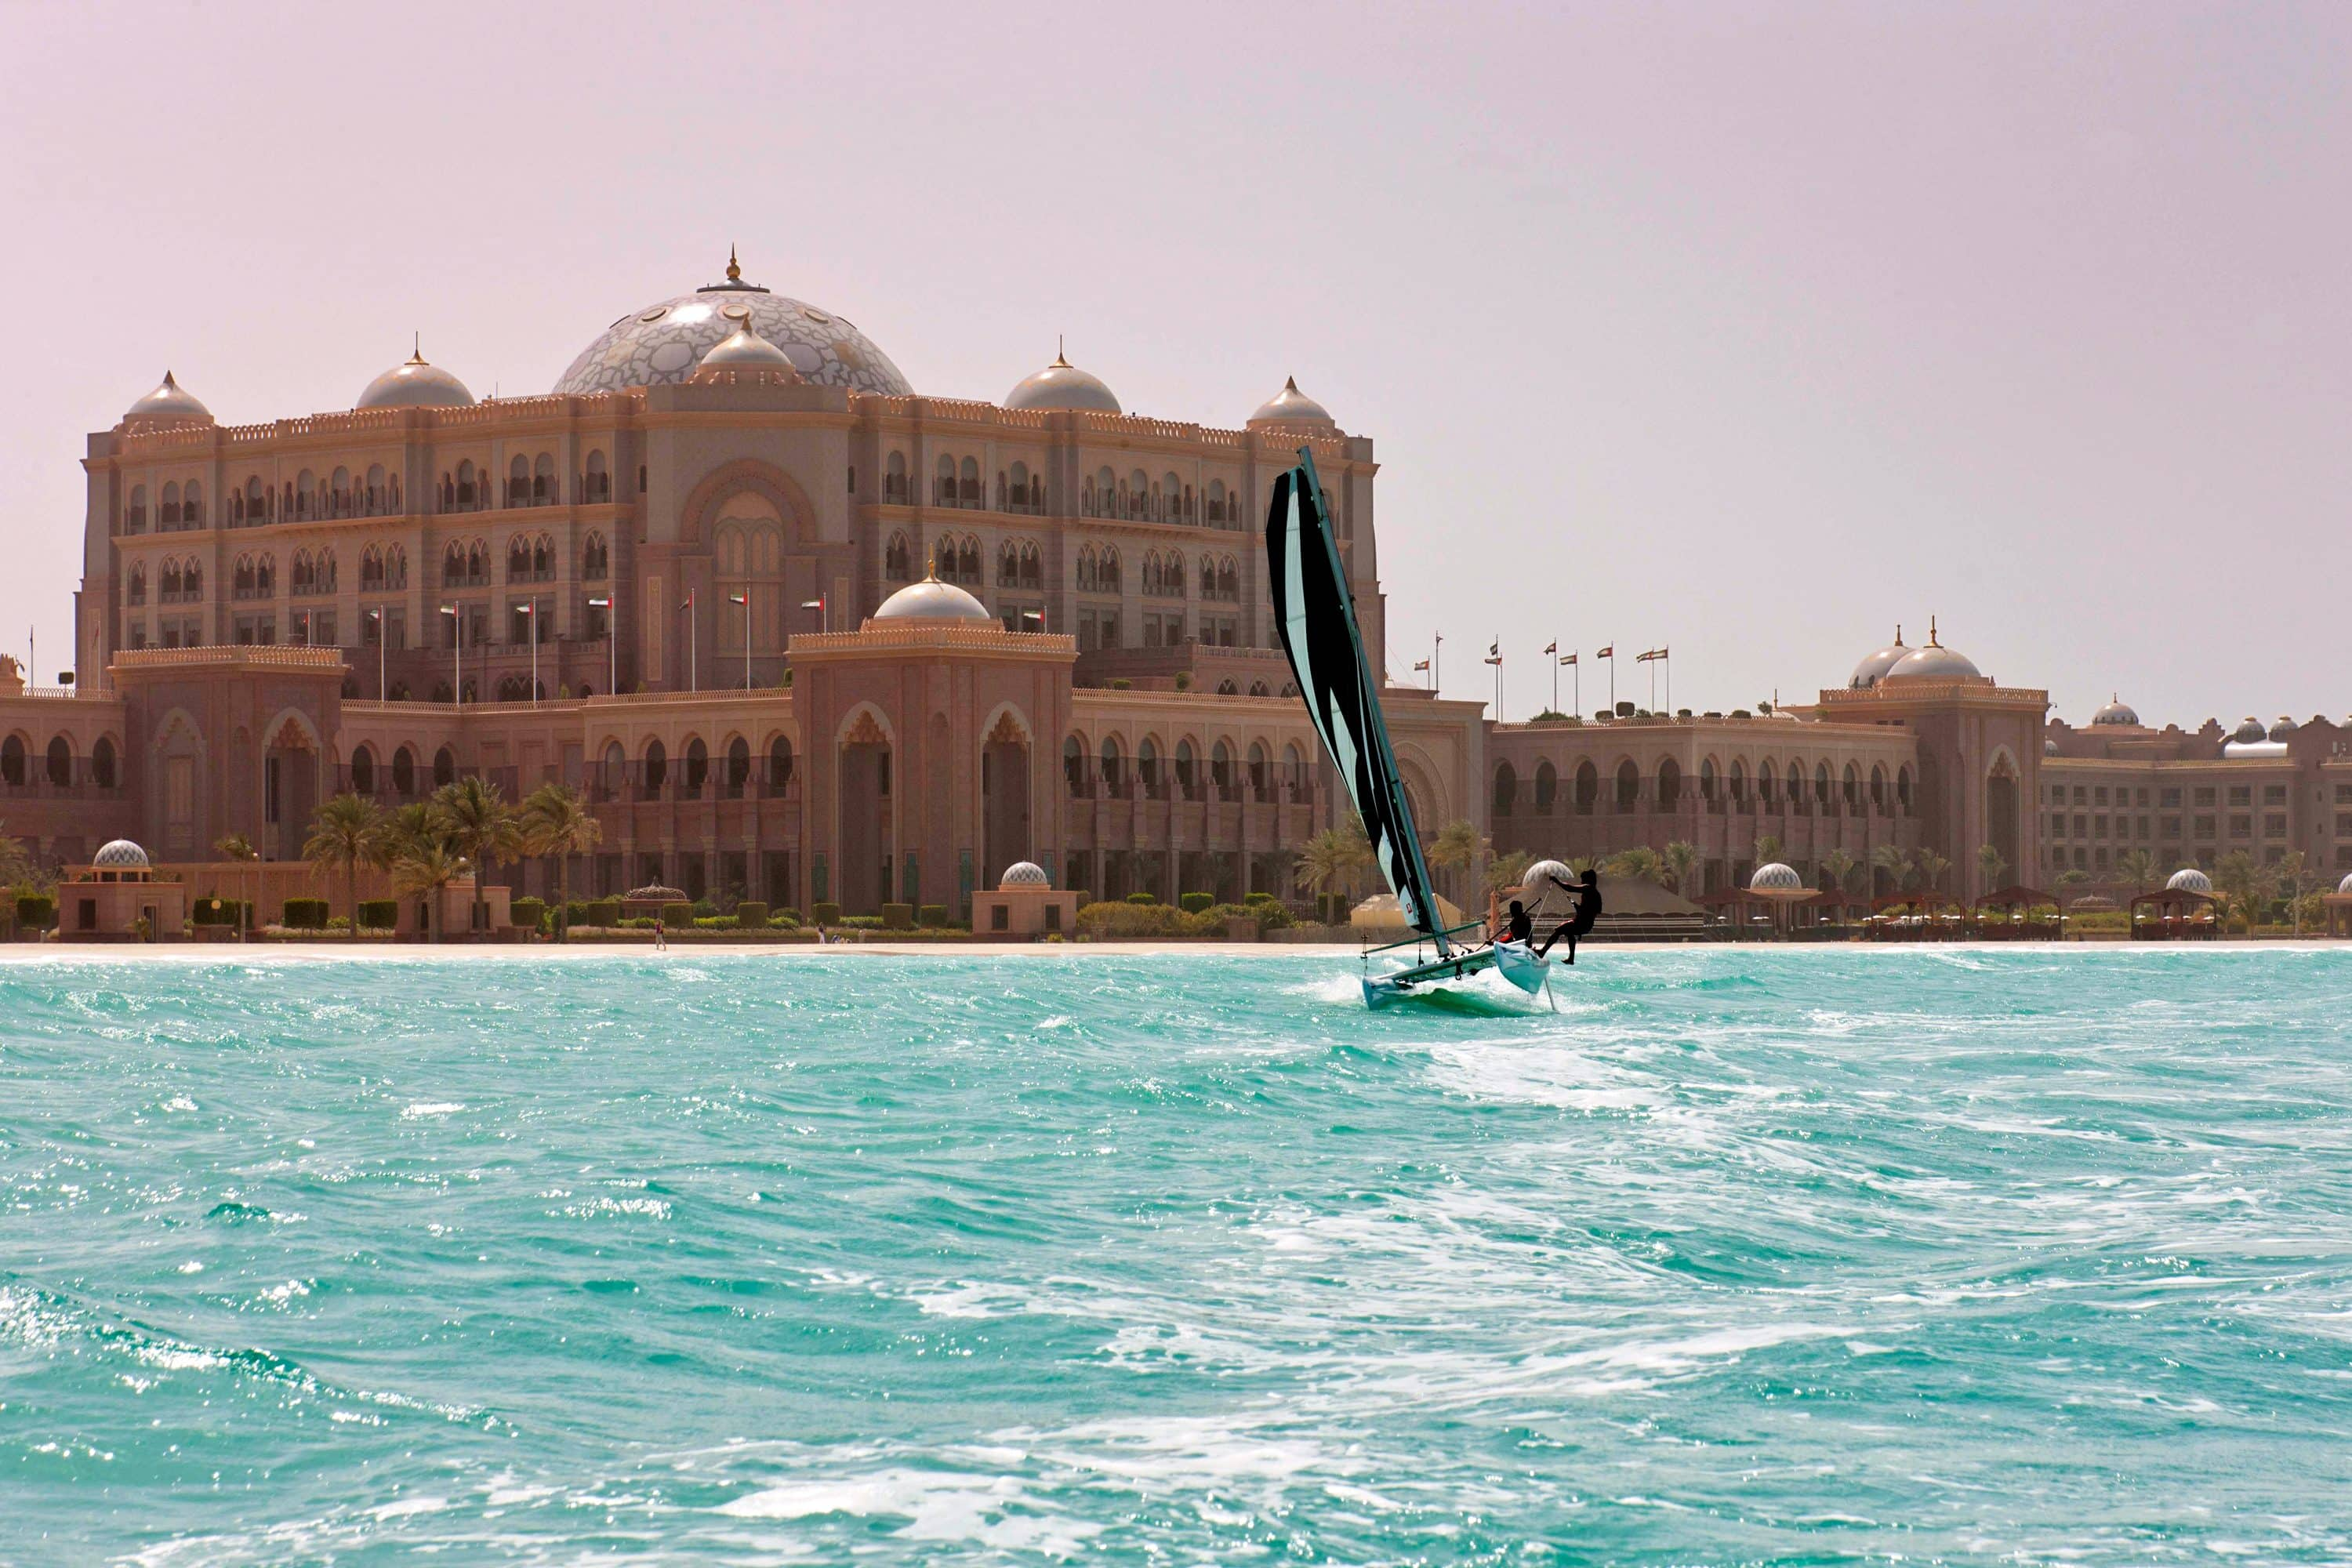 Windsurfer on the water in front of Emirates Palace